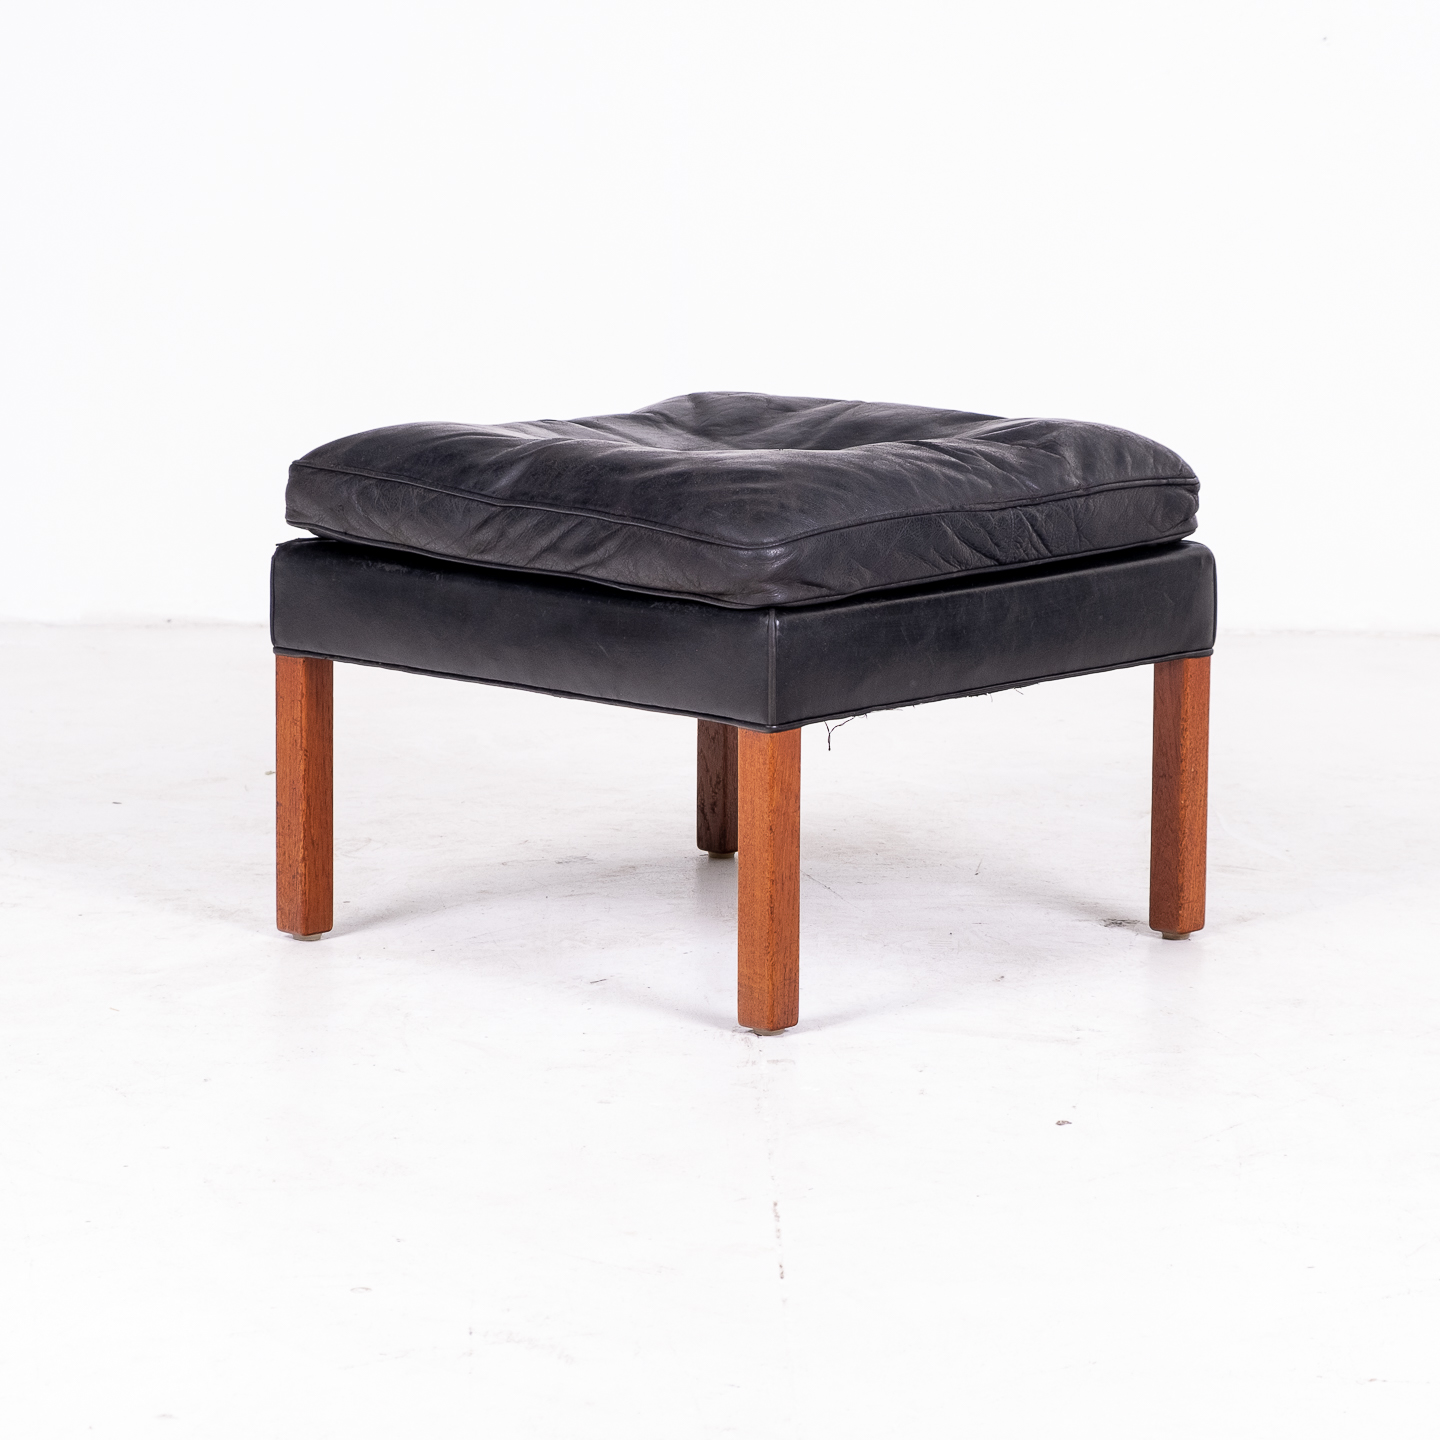 Model 2207 Armchair With Footstool Designed By Borge Mogensen For Fredericia Mobelfabrik In Black Leather, 1960s, Denmark 0000013